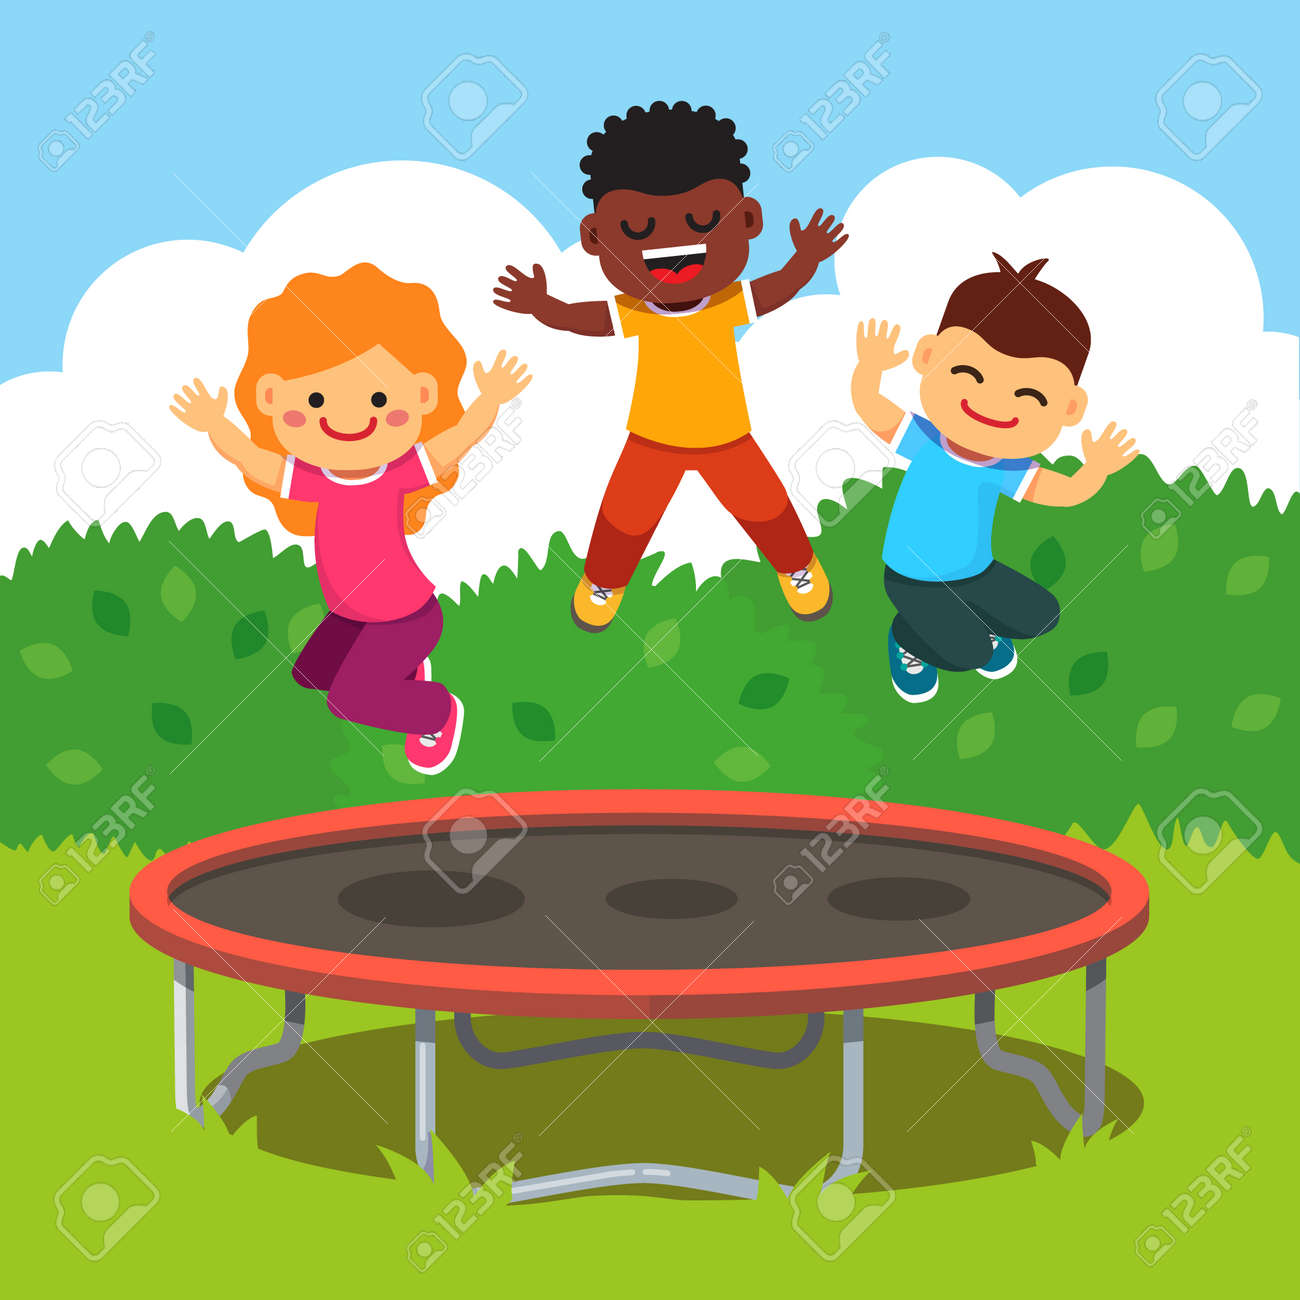 Three Excited And Smiling Kids Jumping On Trampoline In A Courtyard Royalty Free Cliparts Vectors And Stock Illustration Image 46607654